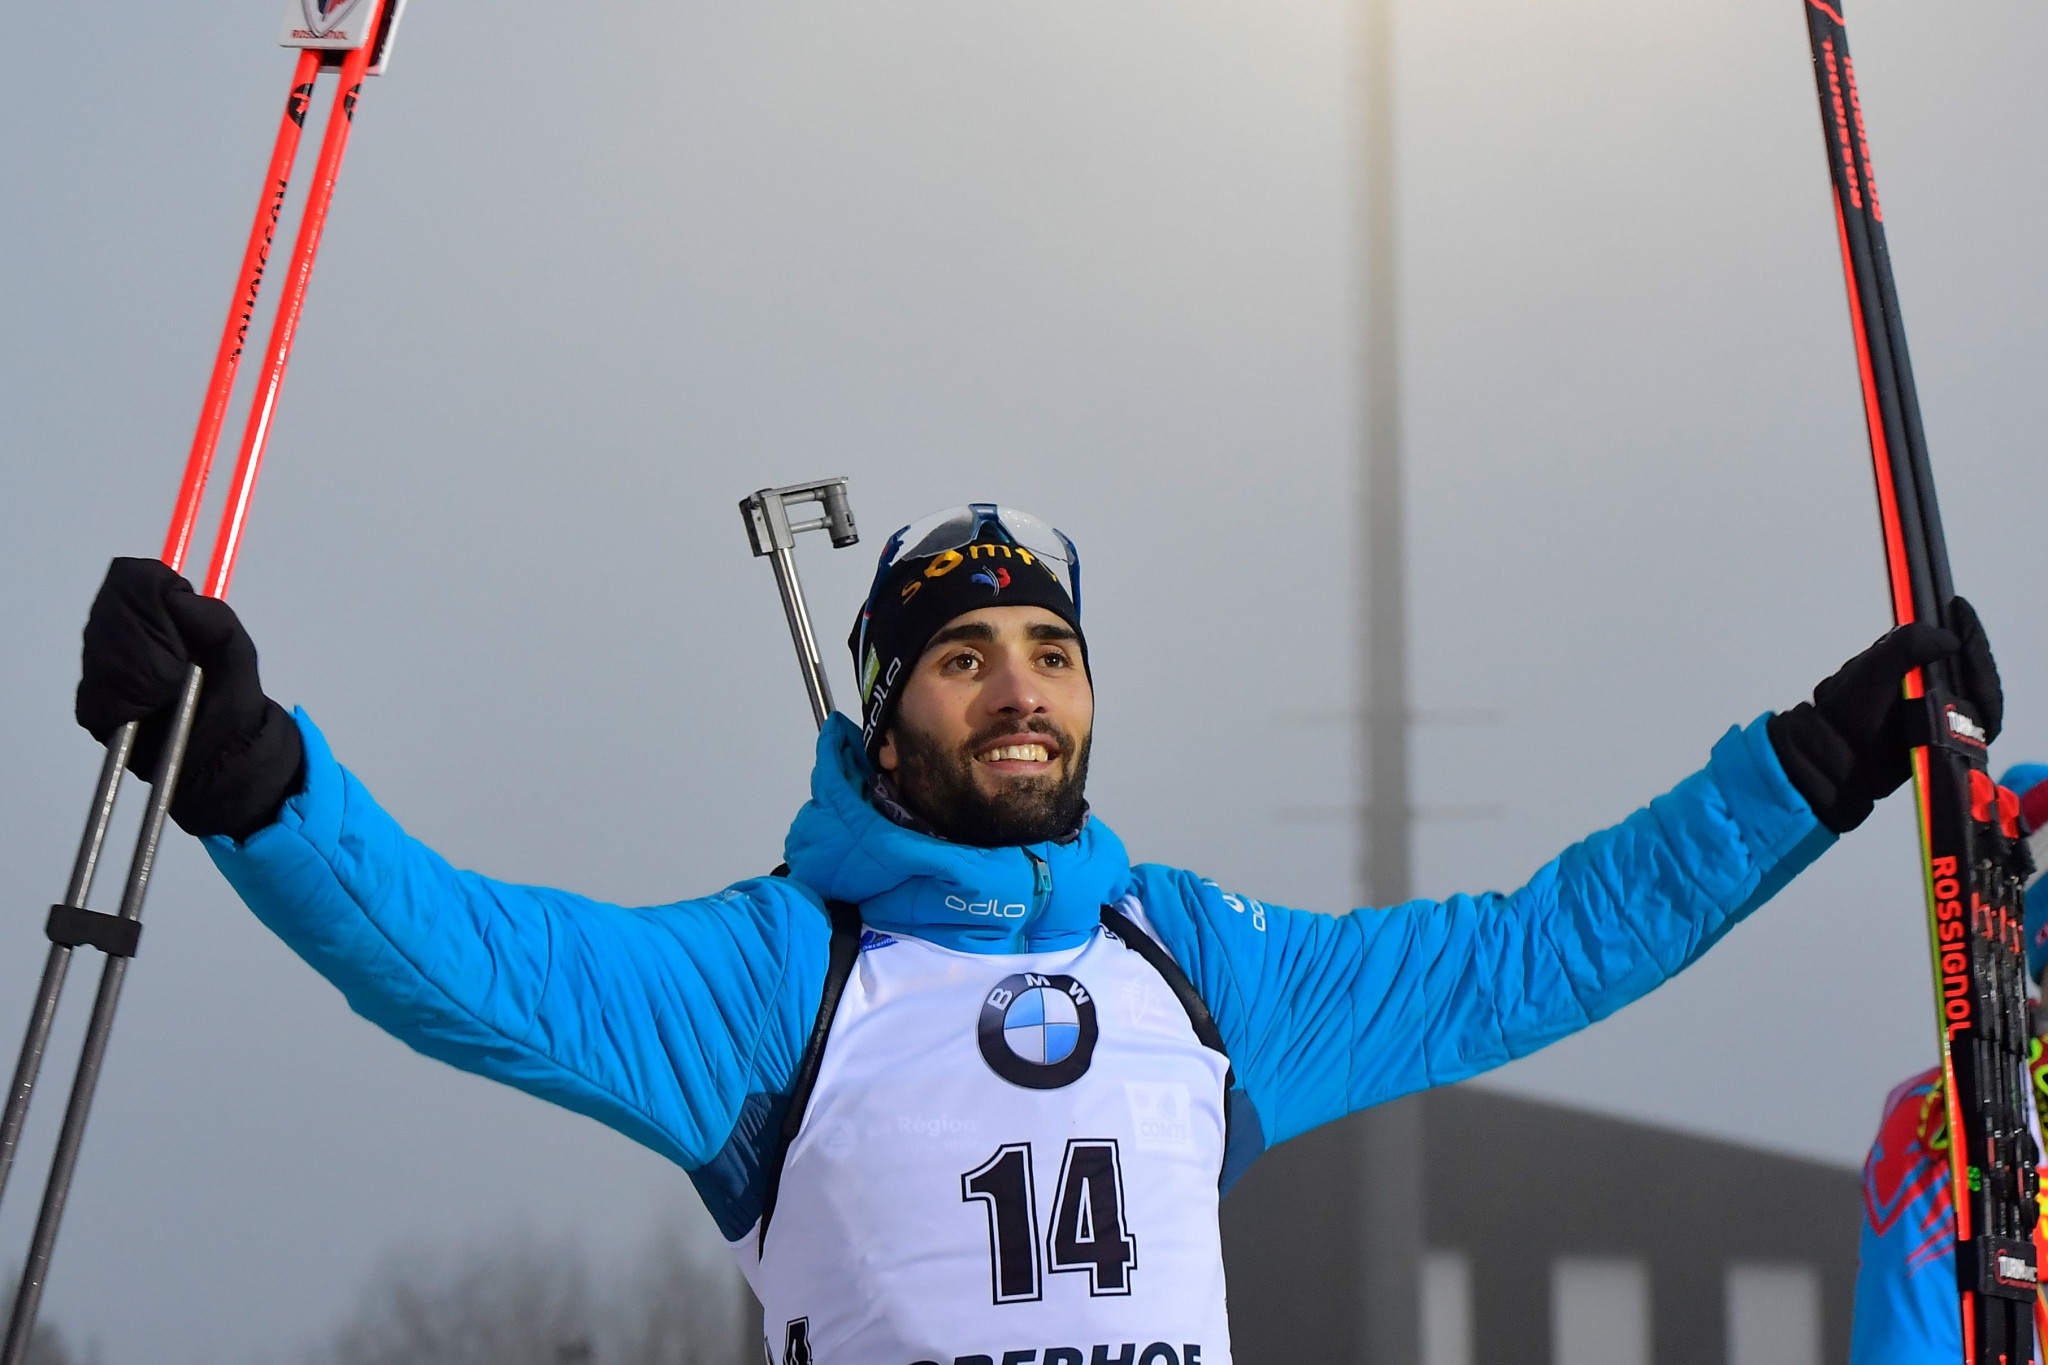 Fourcade makes winning start to 2020 at IBU World Cup in Oberhof